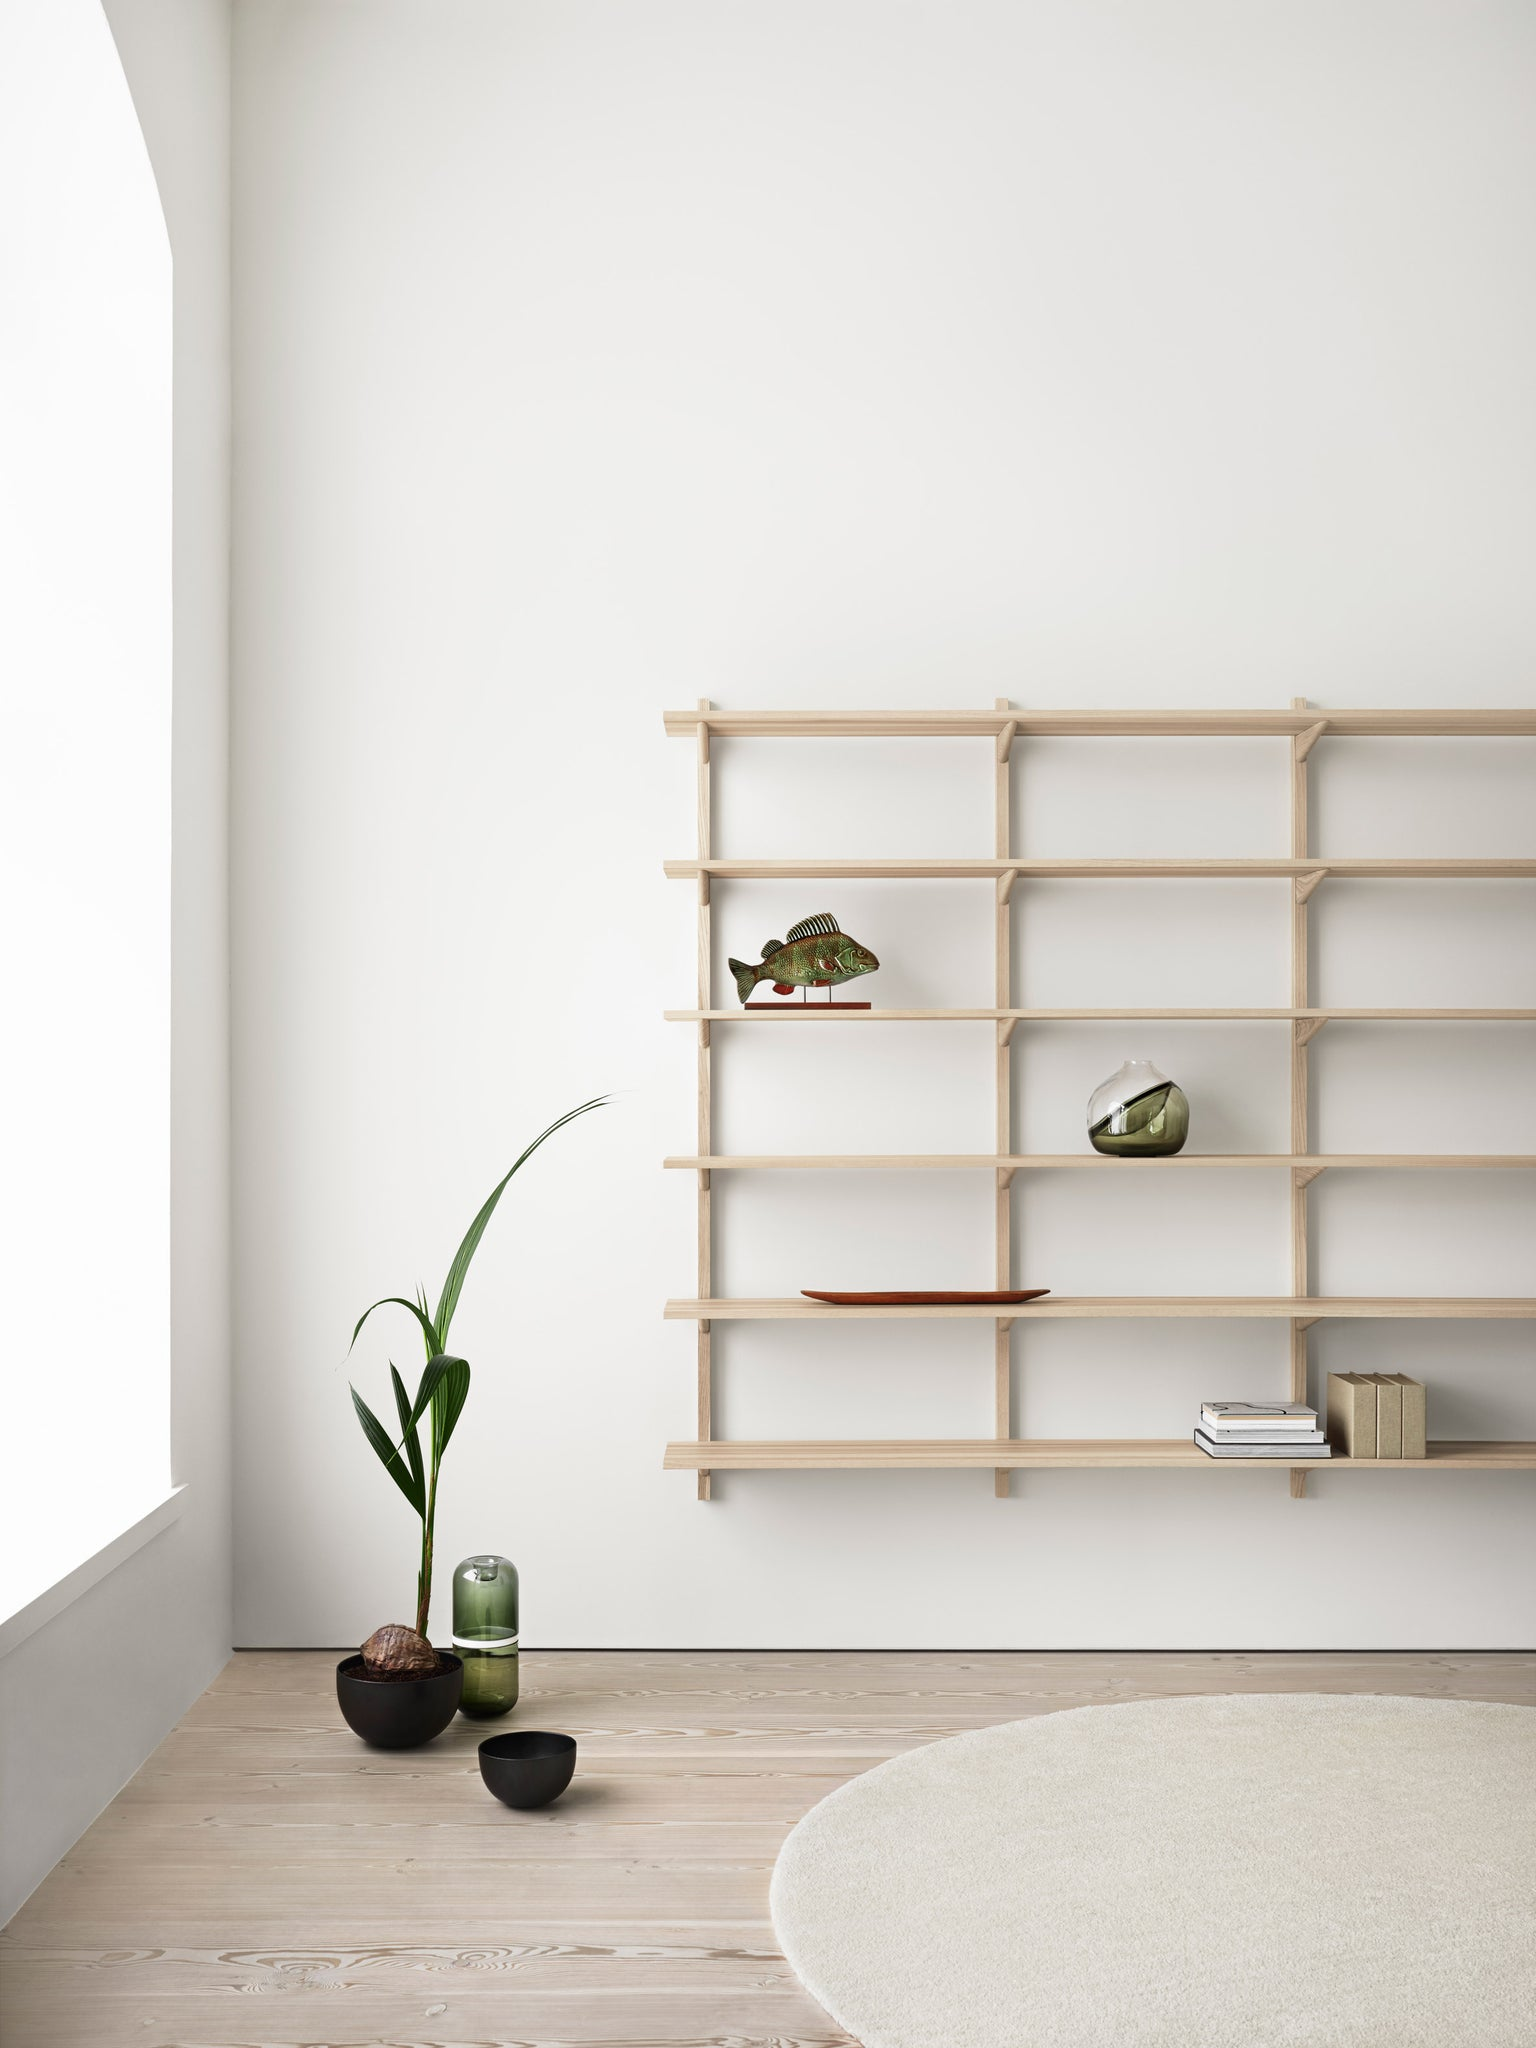 7 New pieces of furniture you haven't seen yet